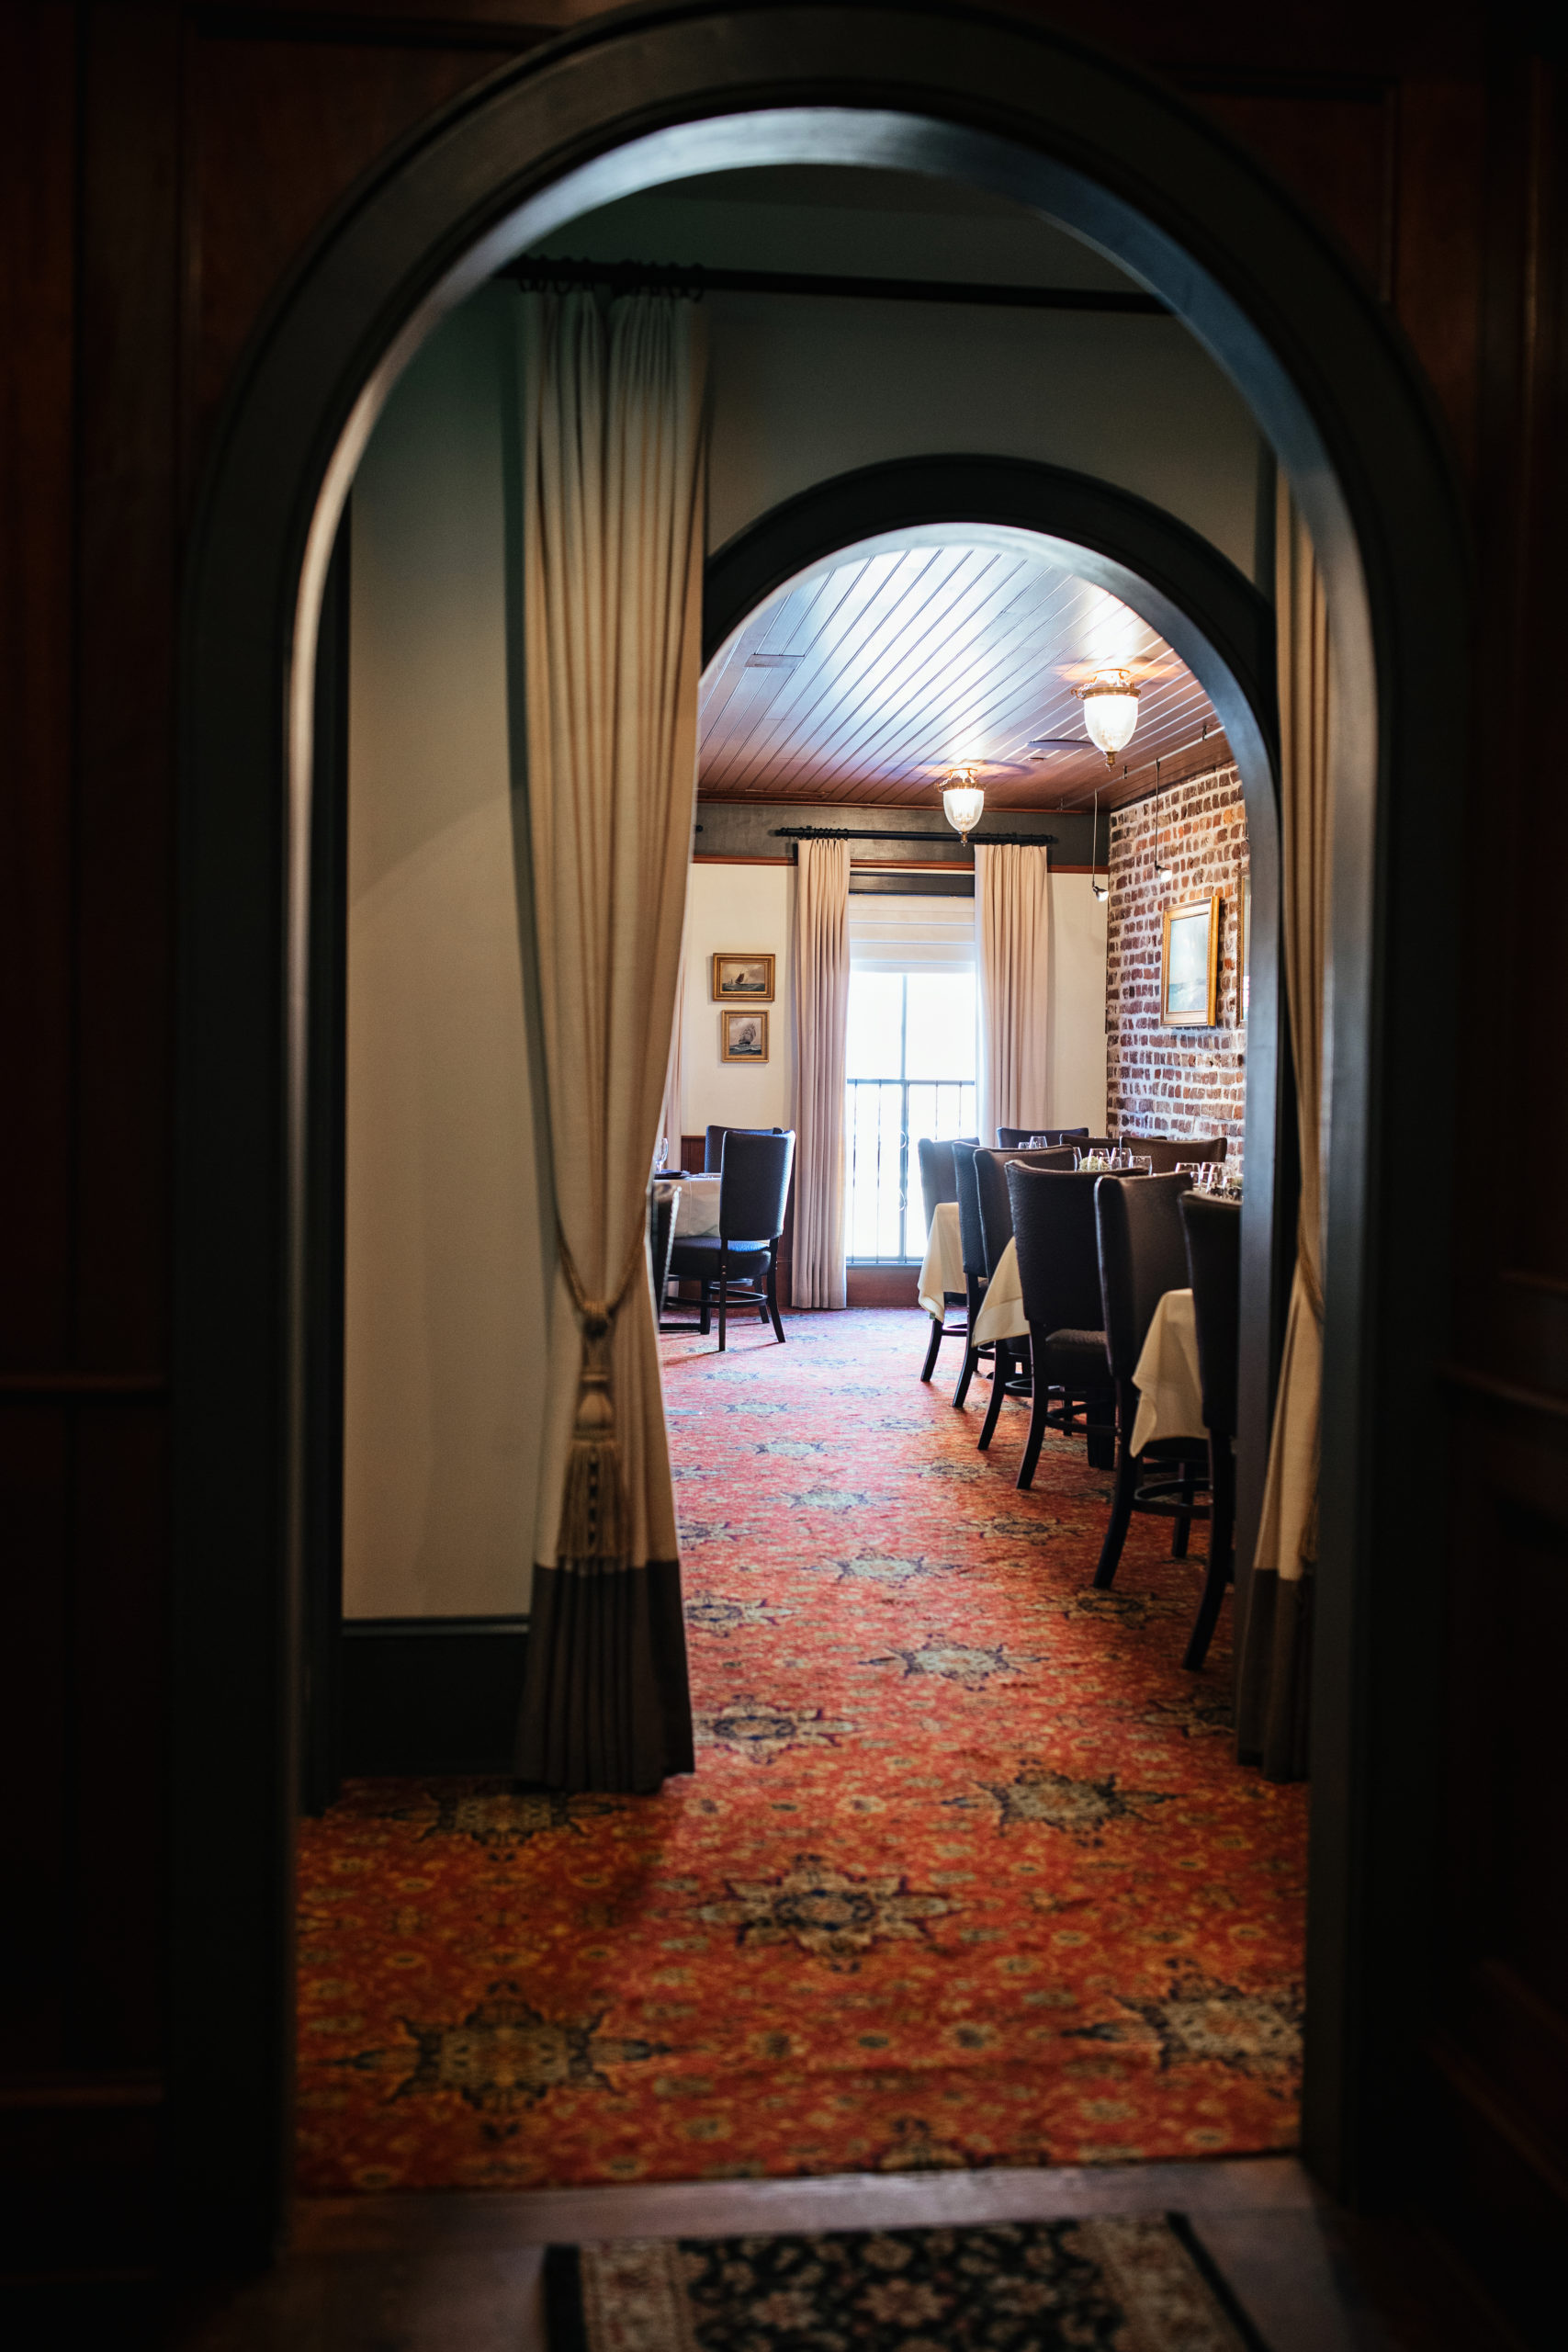 Arched hallway leaving to a restaurant dining room with exposed brick wall